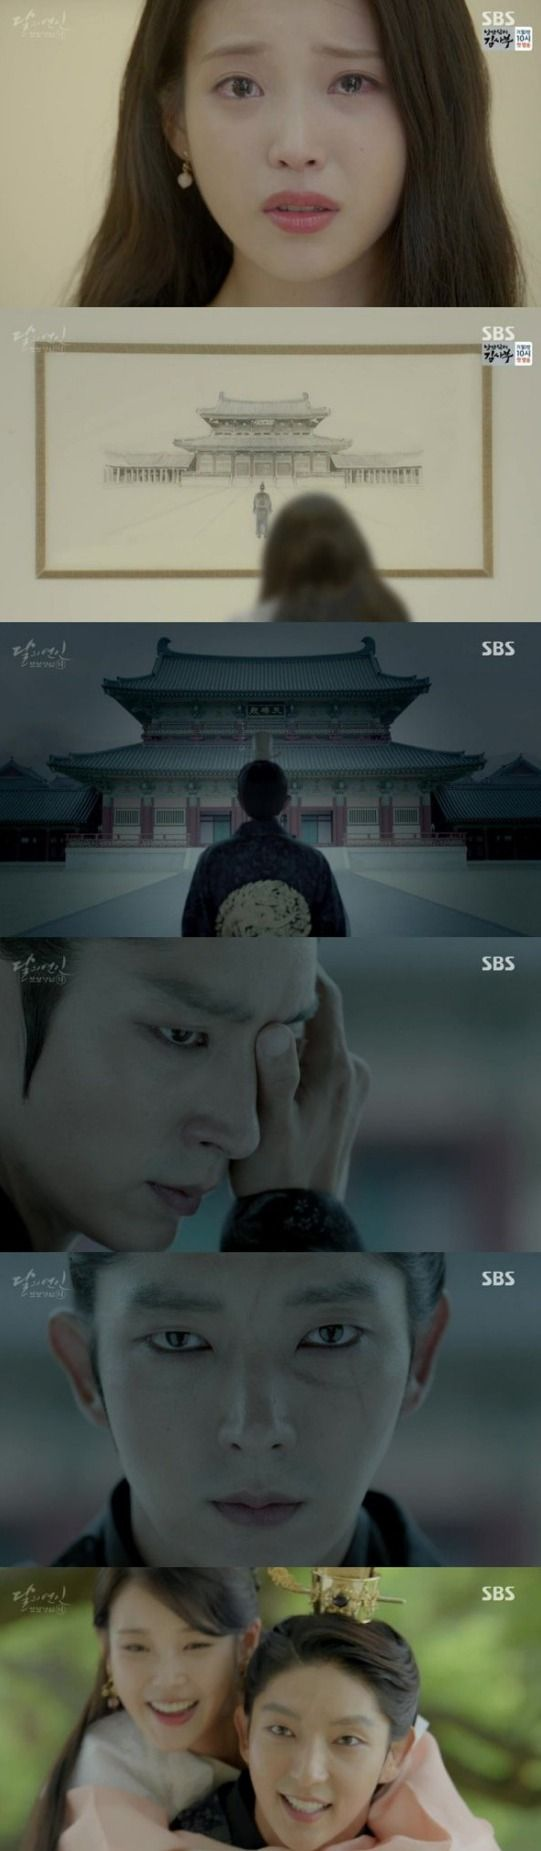 [Spoiler] Added final episode 20 captures for the #kdrama 'Scarlet Heart: Ryeo' This broke me